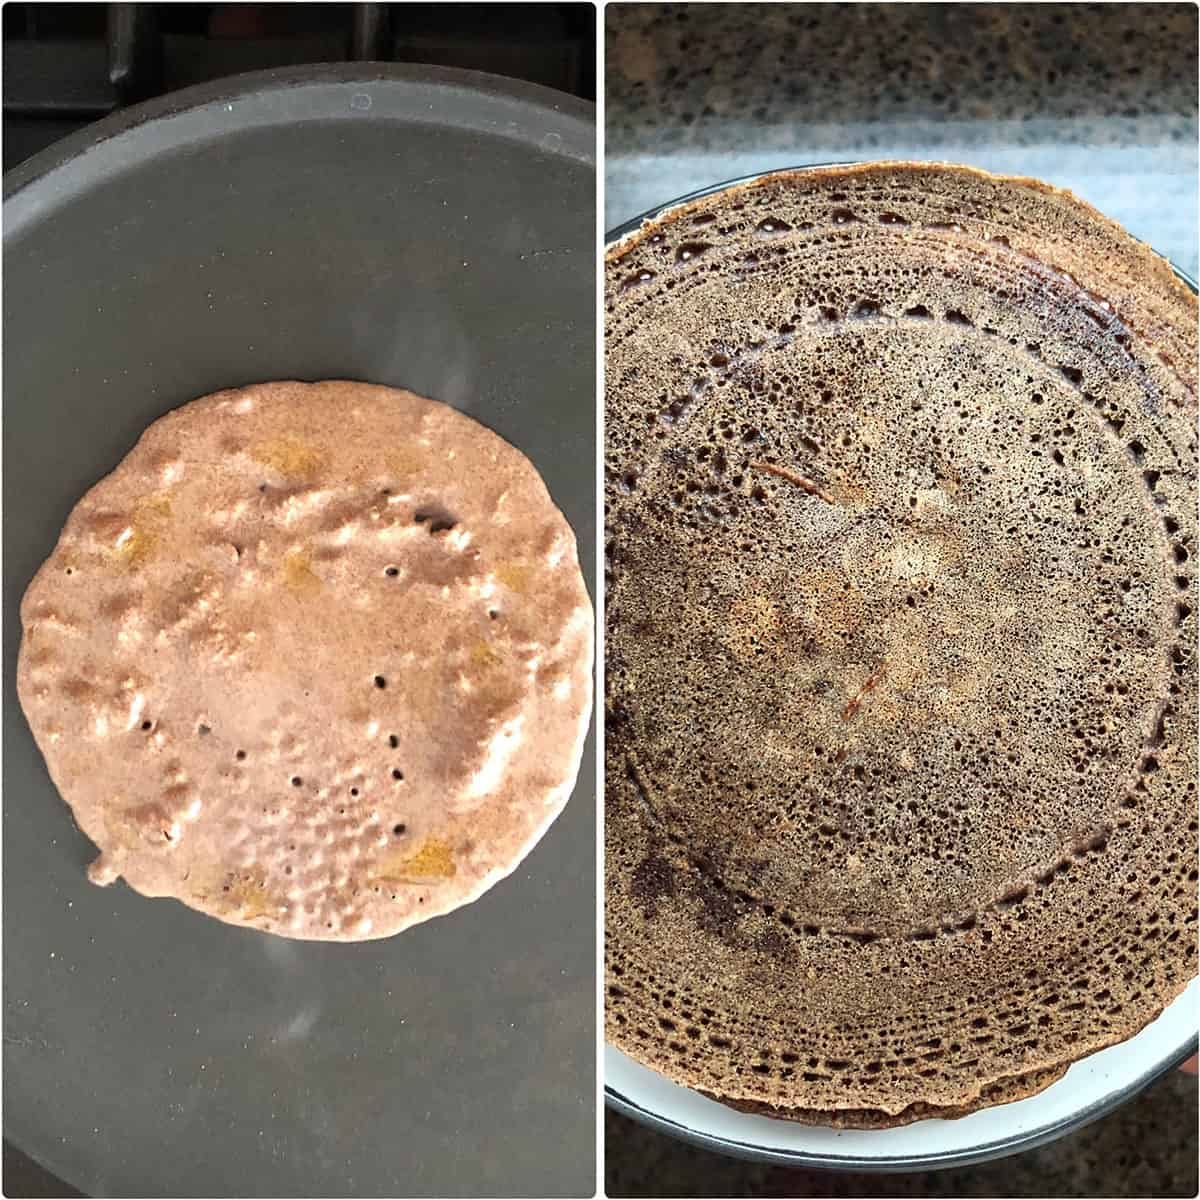 Side by side photos of dosa batter on the hot griddle and cooked dosa